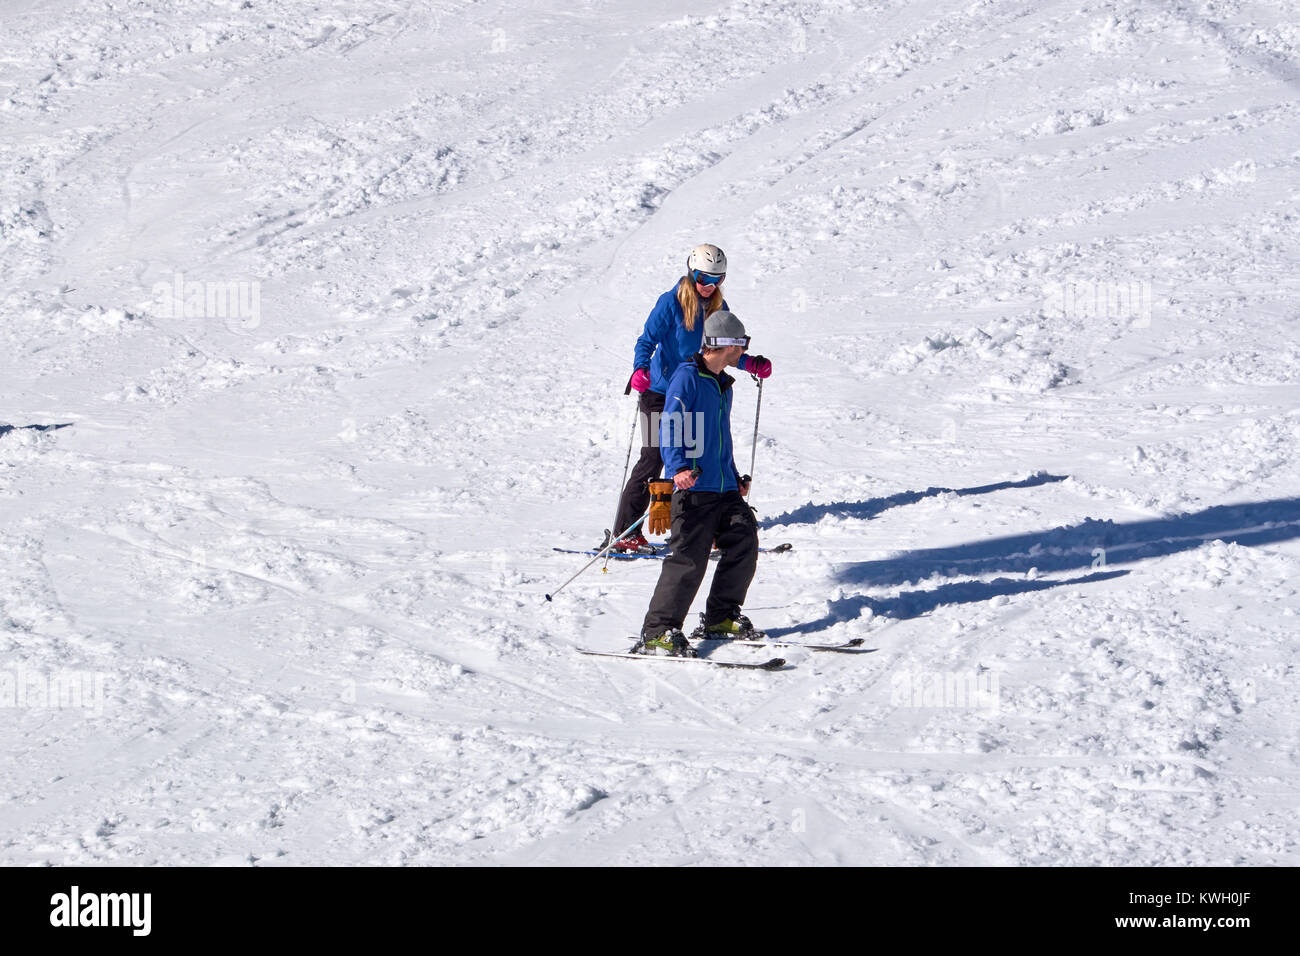 WINTERBERG, GERMANY - FEBRUARY 15, 2017: A young couple on slalom skies on a piste at Ski Carousel Winterberg - Stock Image